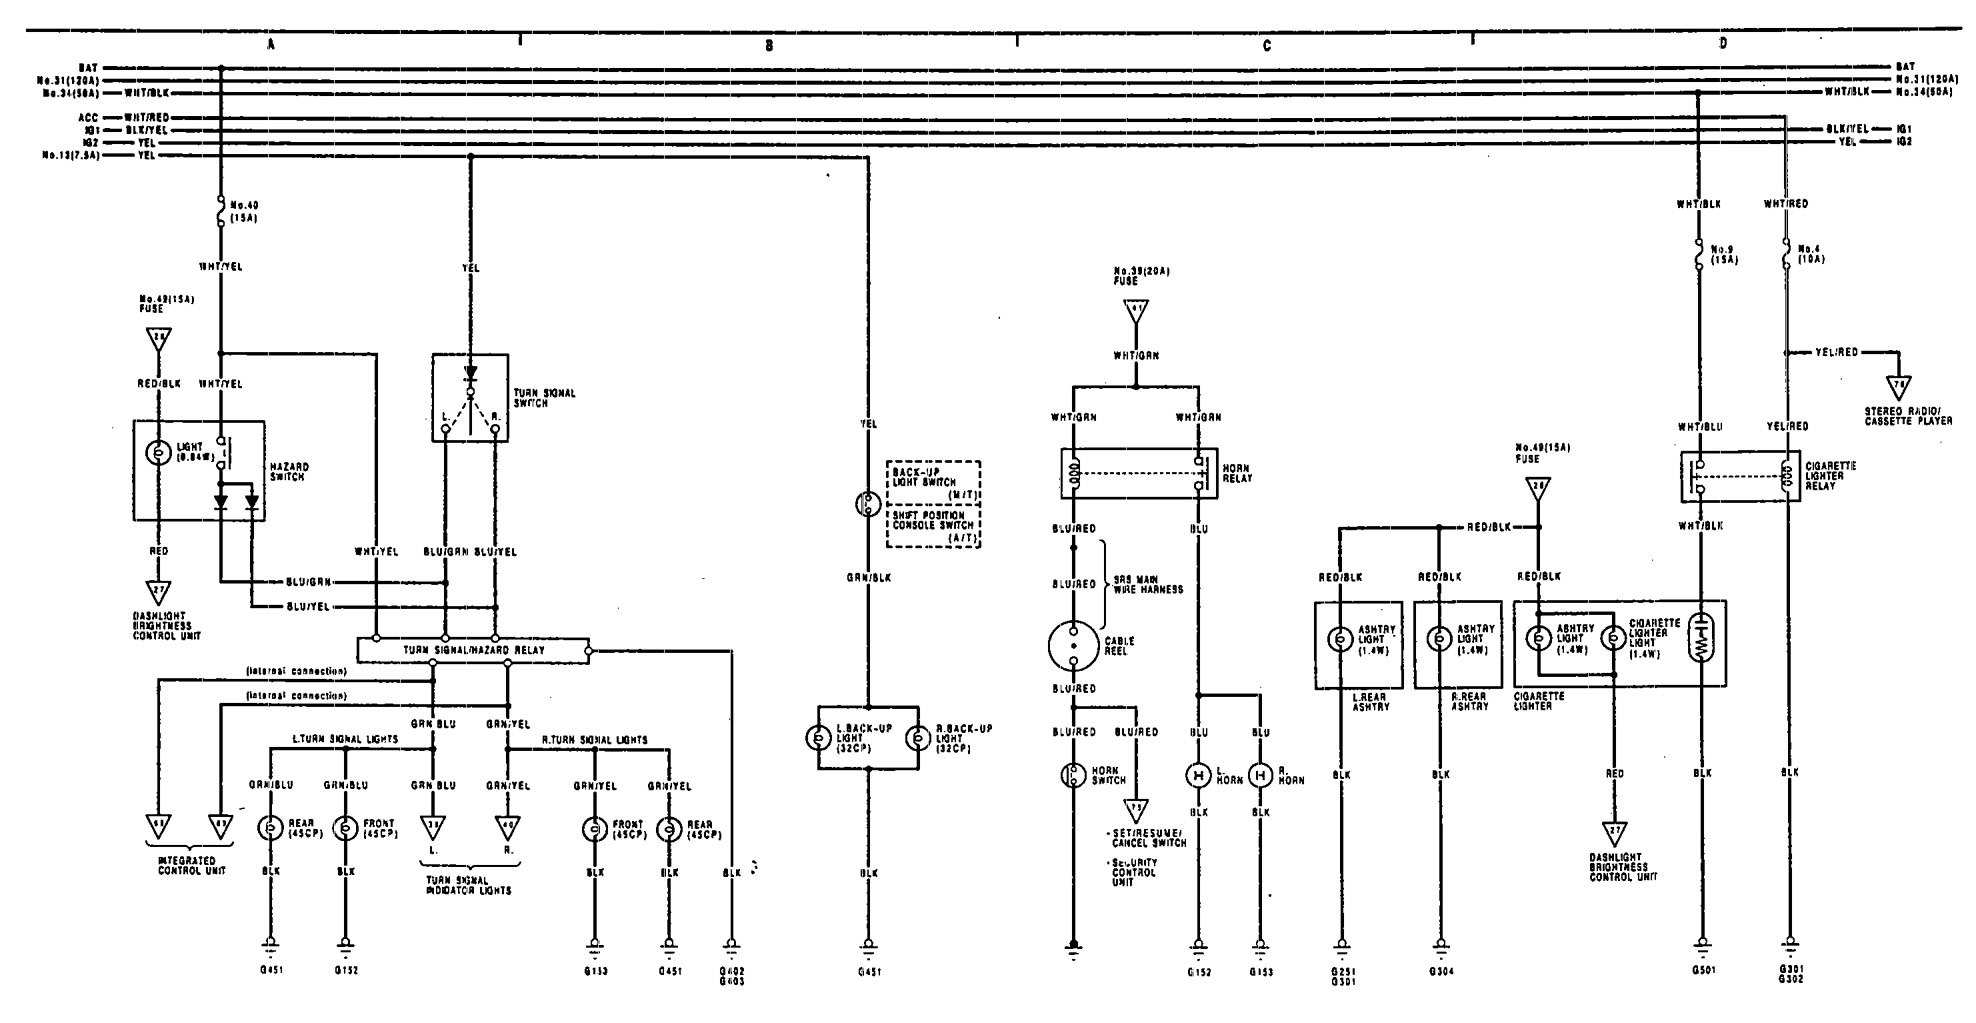 Wiring Diagram For 1991 Acura Legend 91 Engine U2013 Ashtray L